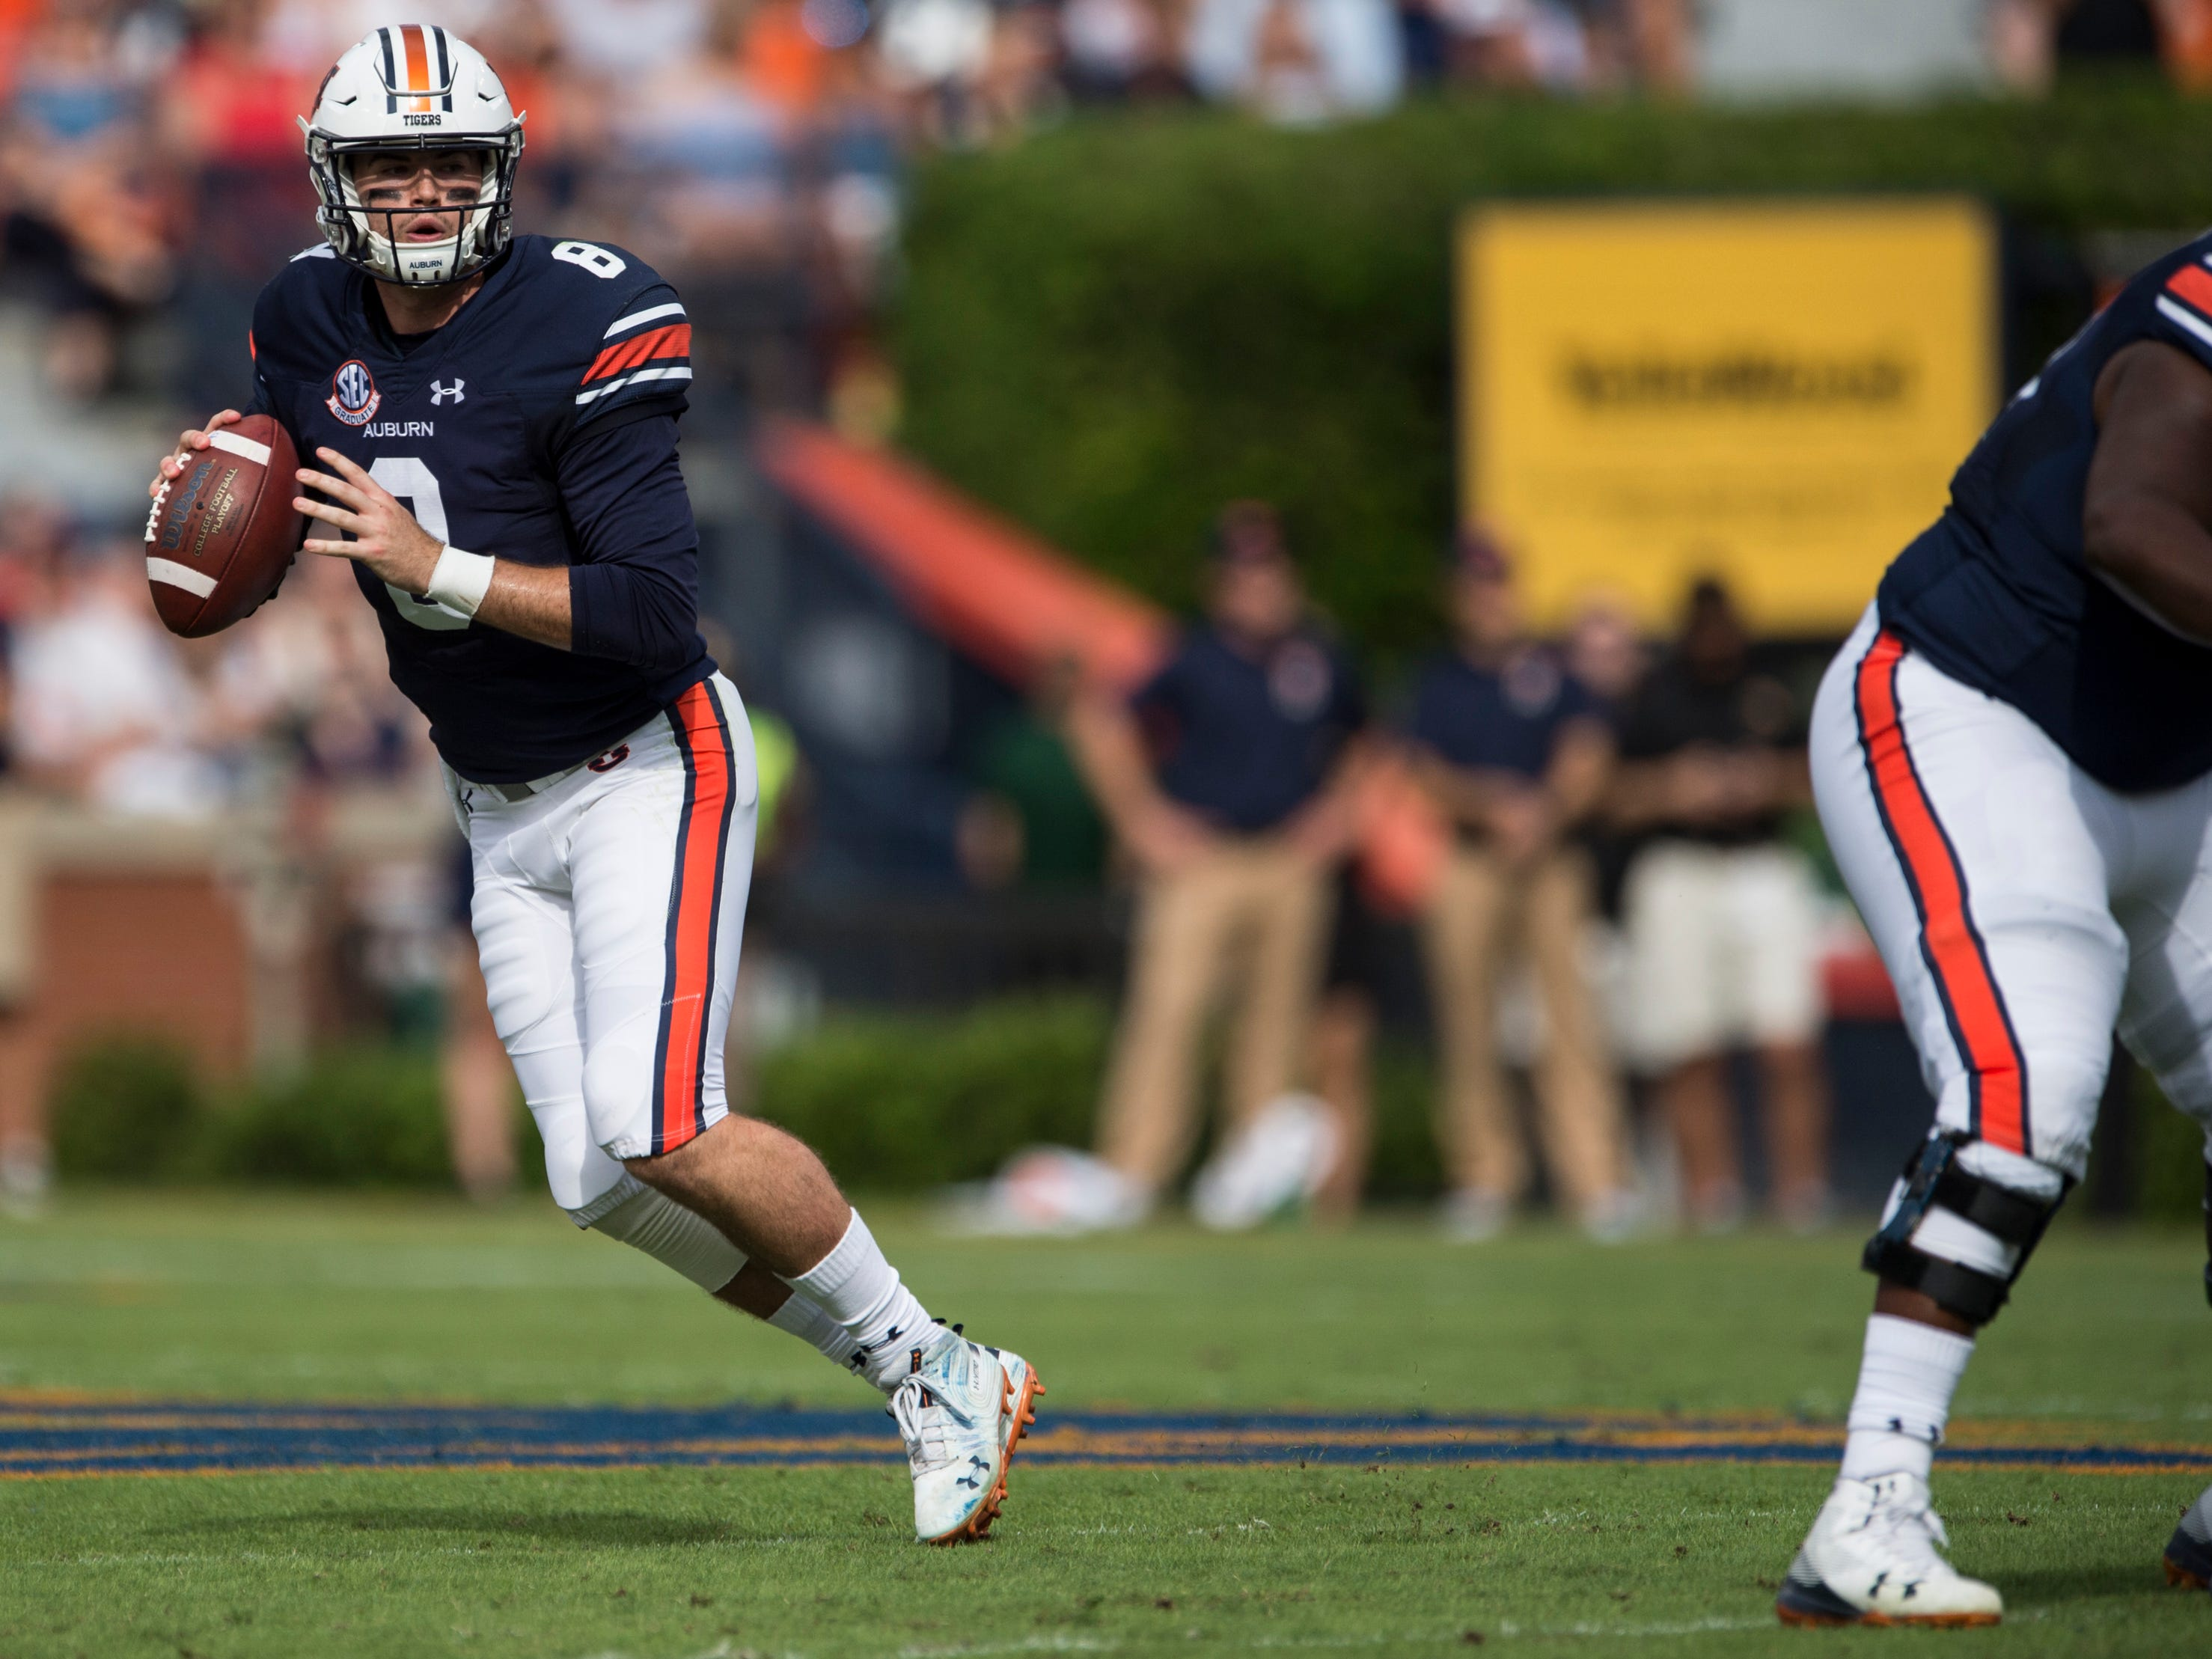 Auburn's Jarrett Stidham (8) looks to throw down field against Southern Miss at Jordan-Hare Stadium in Auburn, Ala., on Saturday, Sept. 29, 2018. Auburn leads Southern Miss 14-3, the game went into a weather delay with 4:27 left in the second quarter.